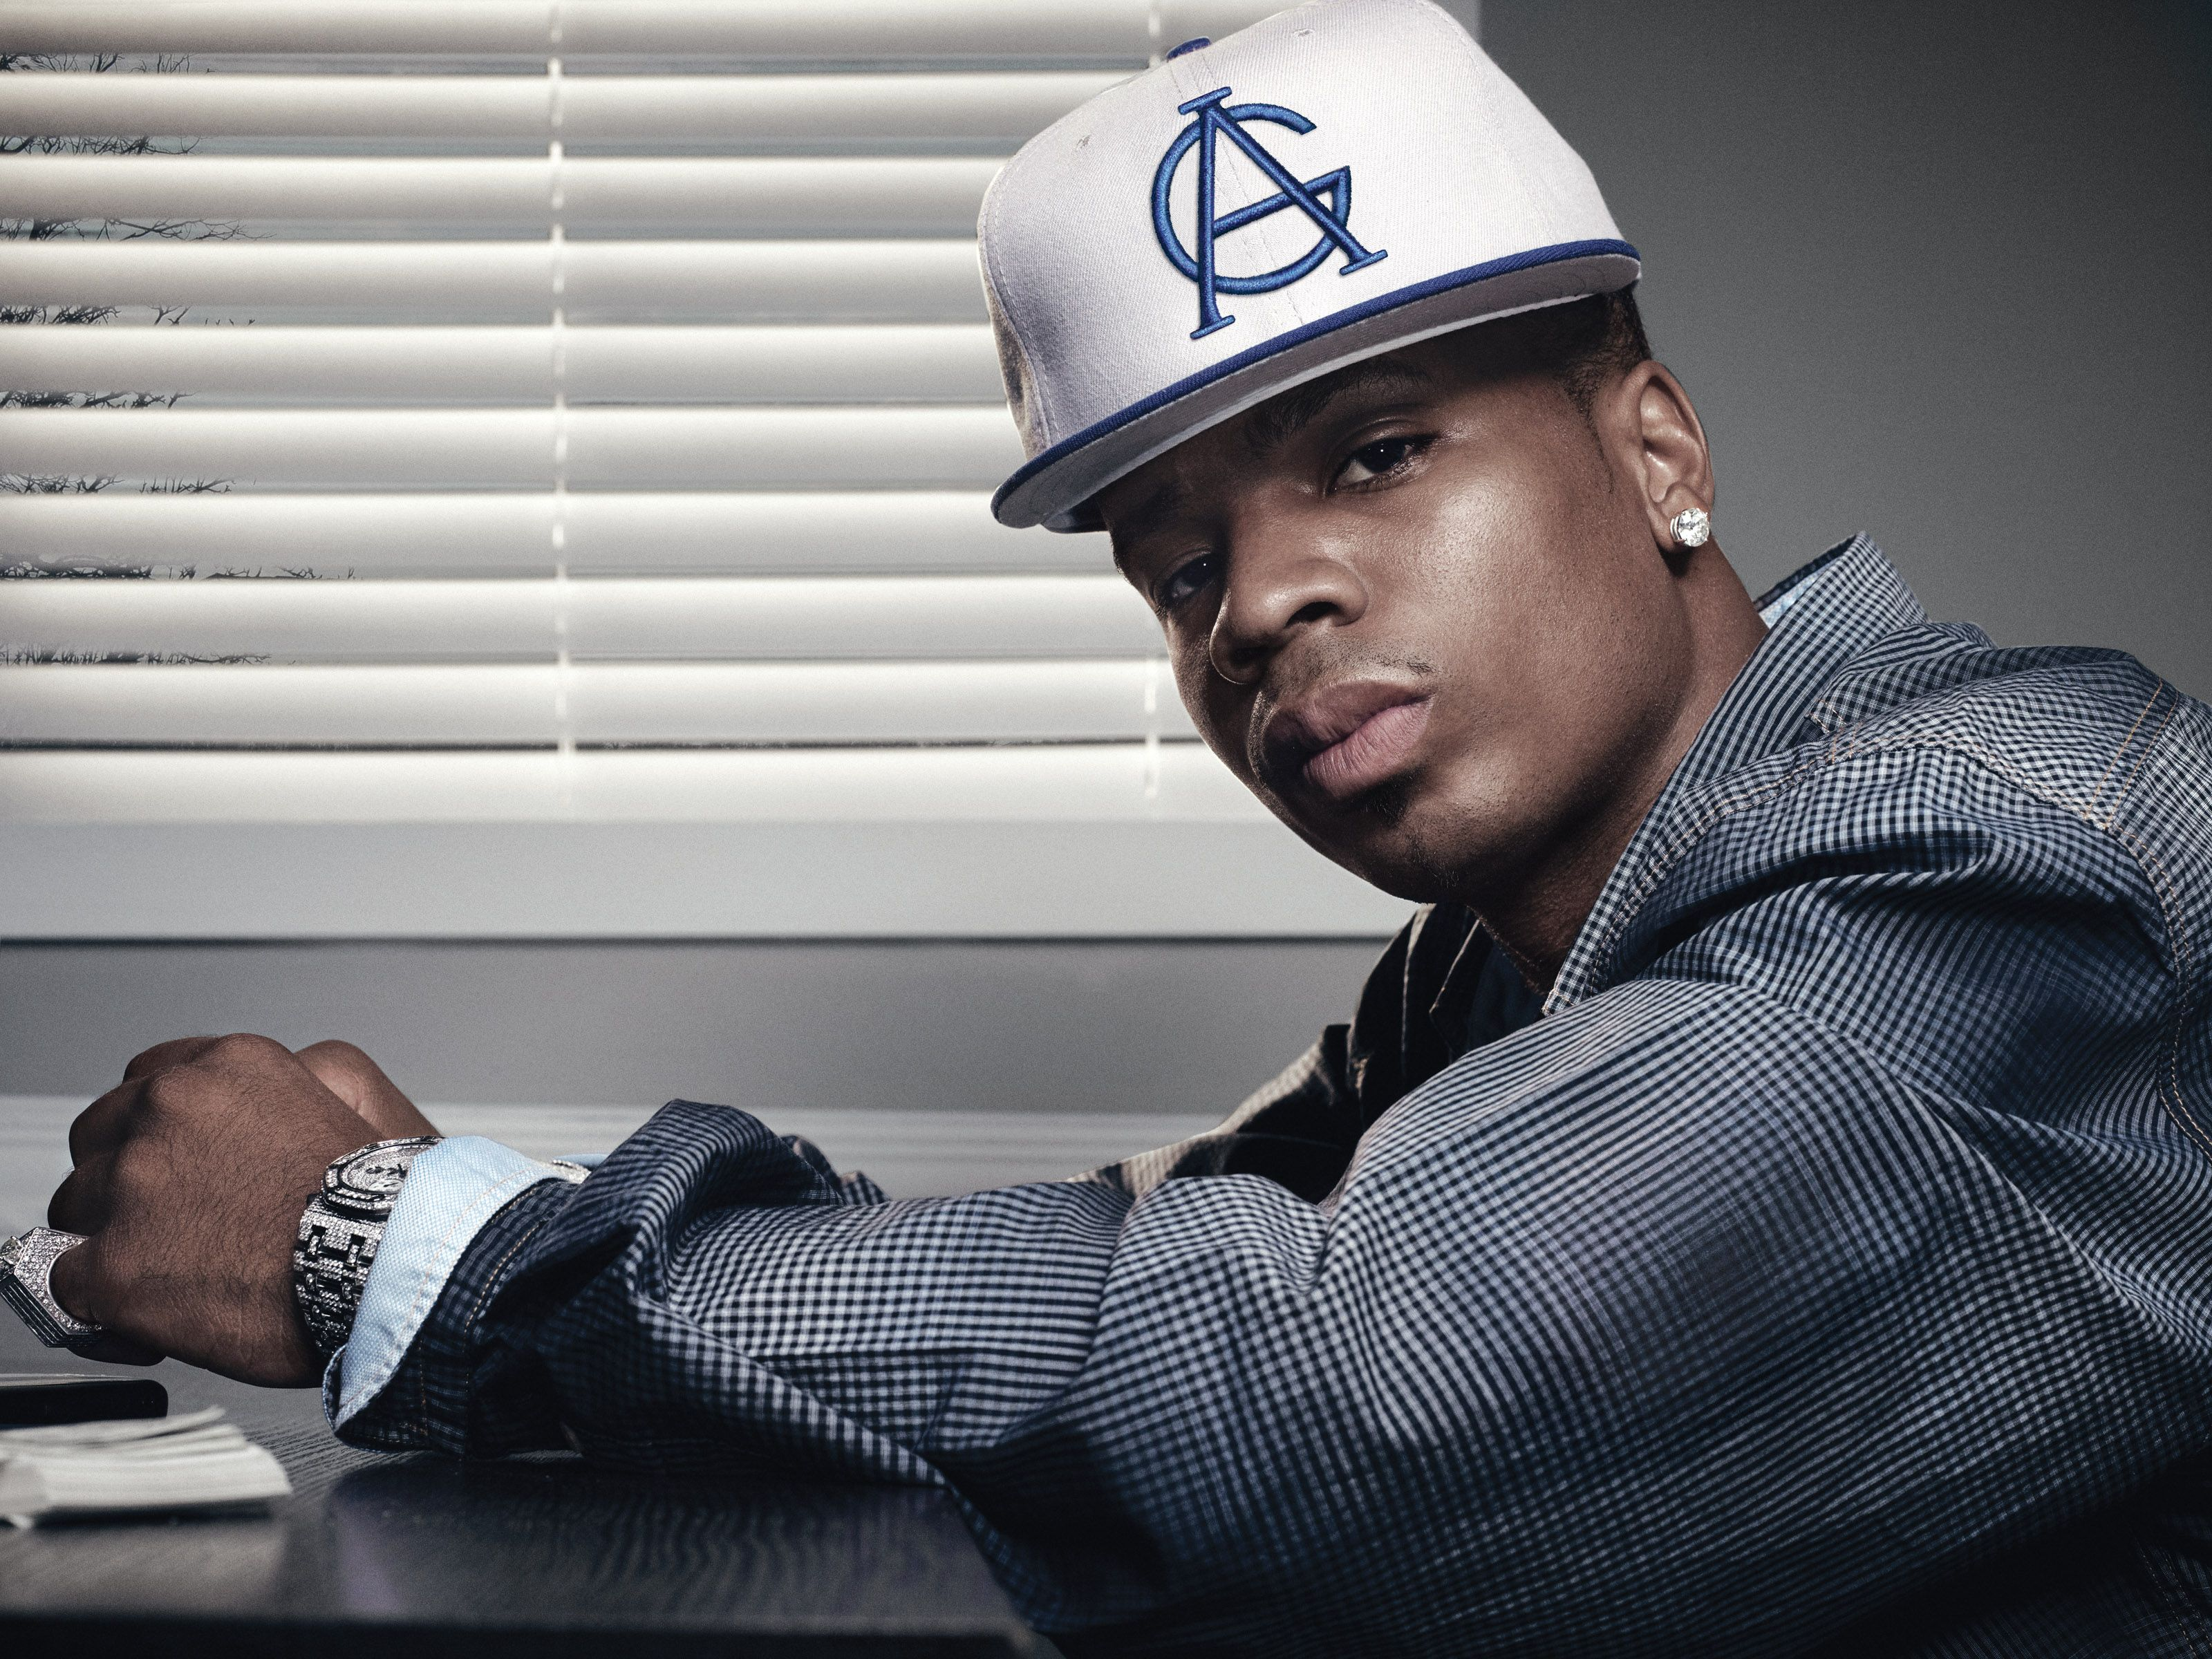 3200x2400 Music: Plies Ft. K Camp - 'Find You' | microphonebully.com